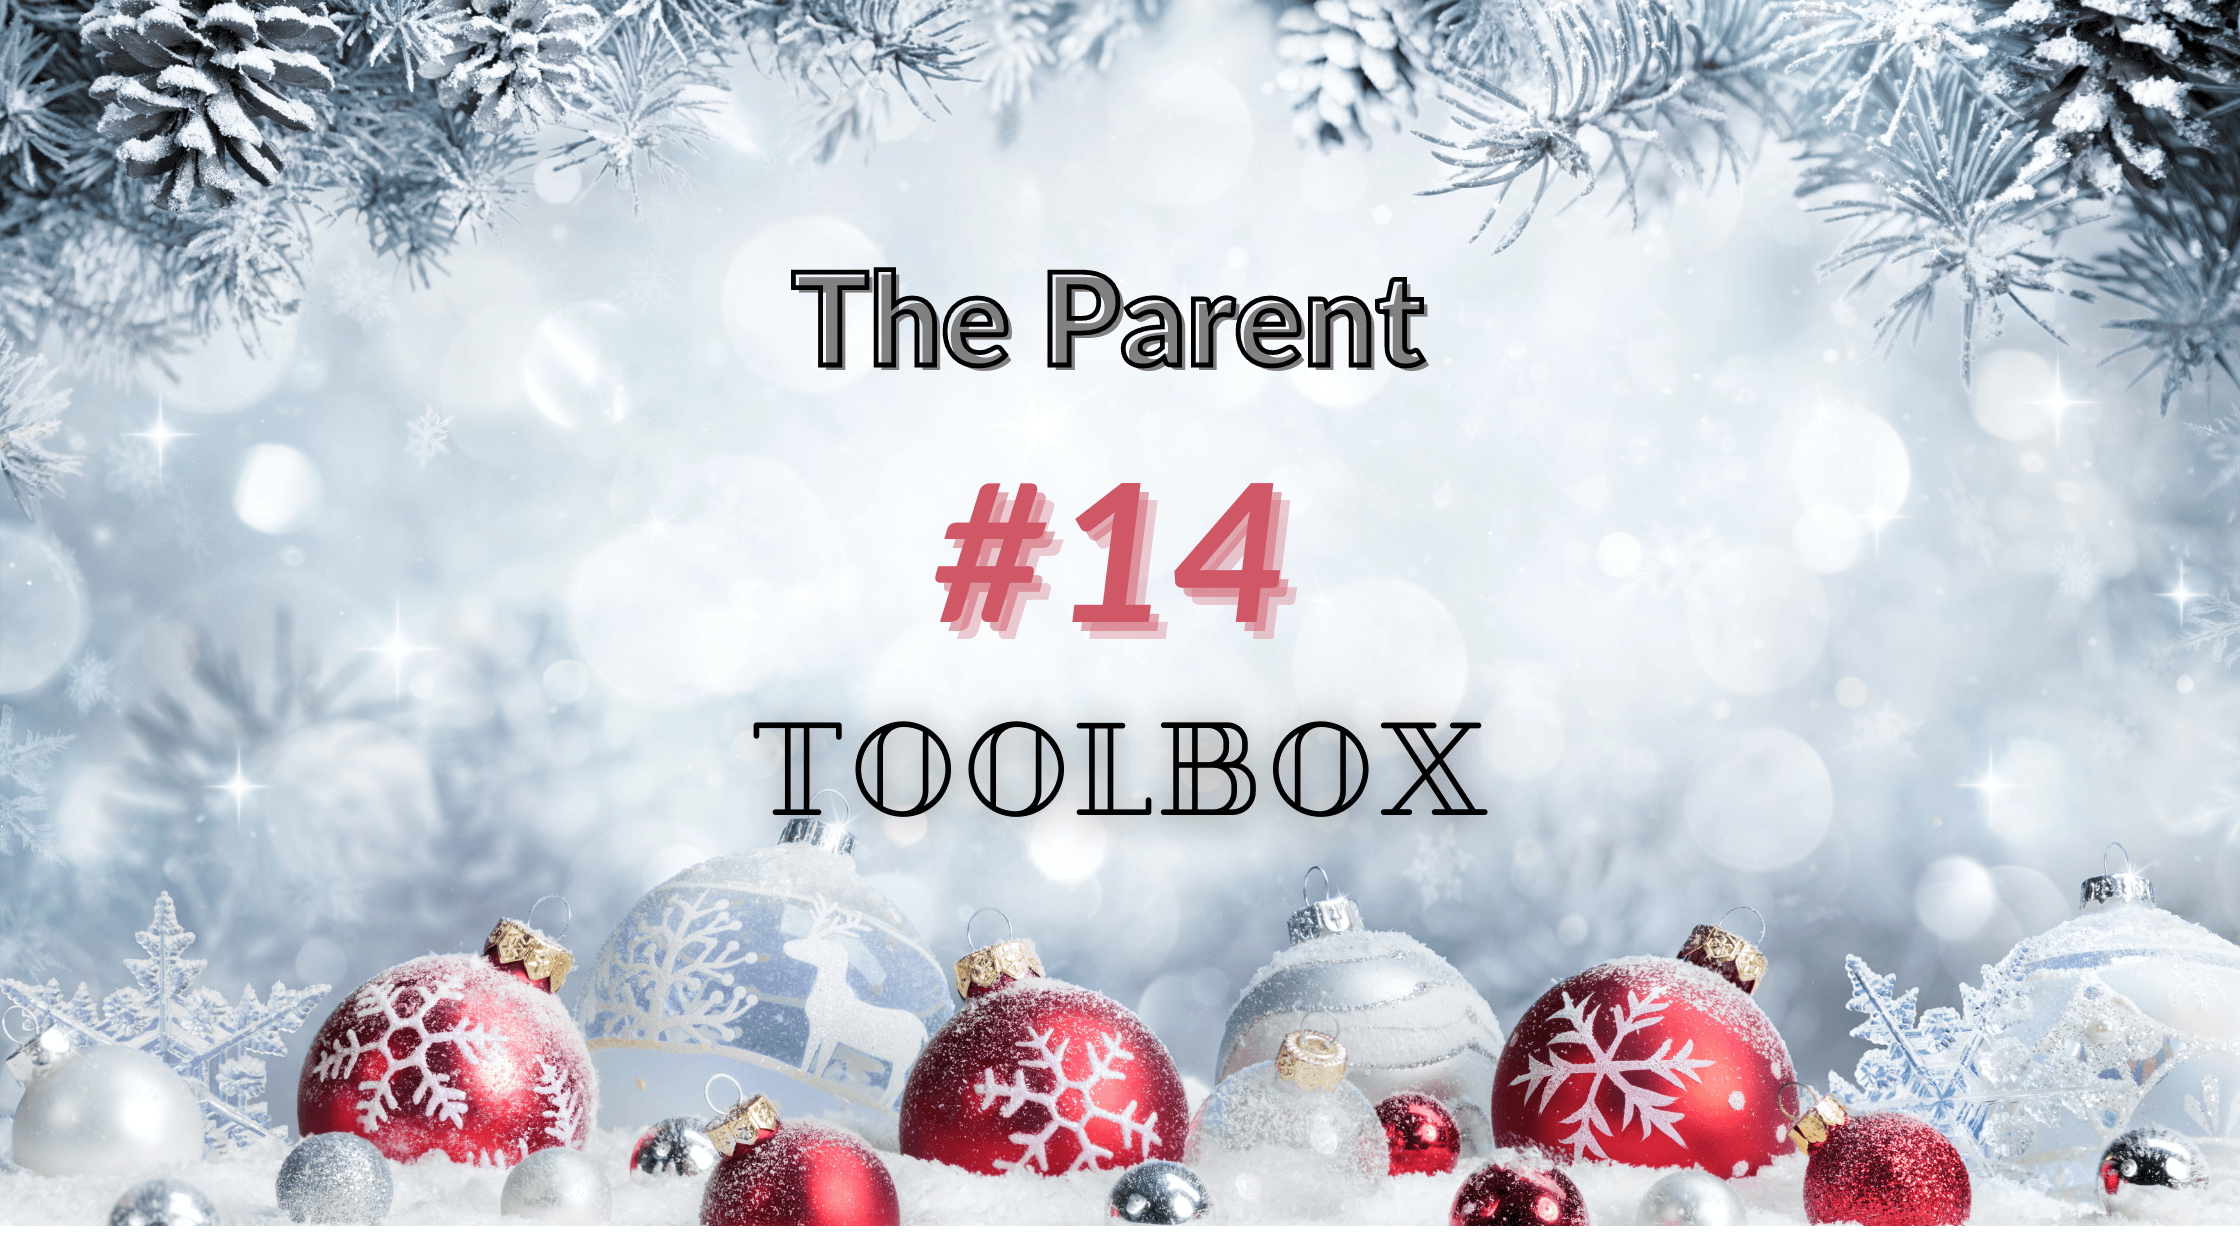 The Parent Toolbox Newsletter #14